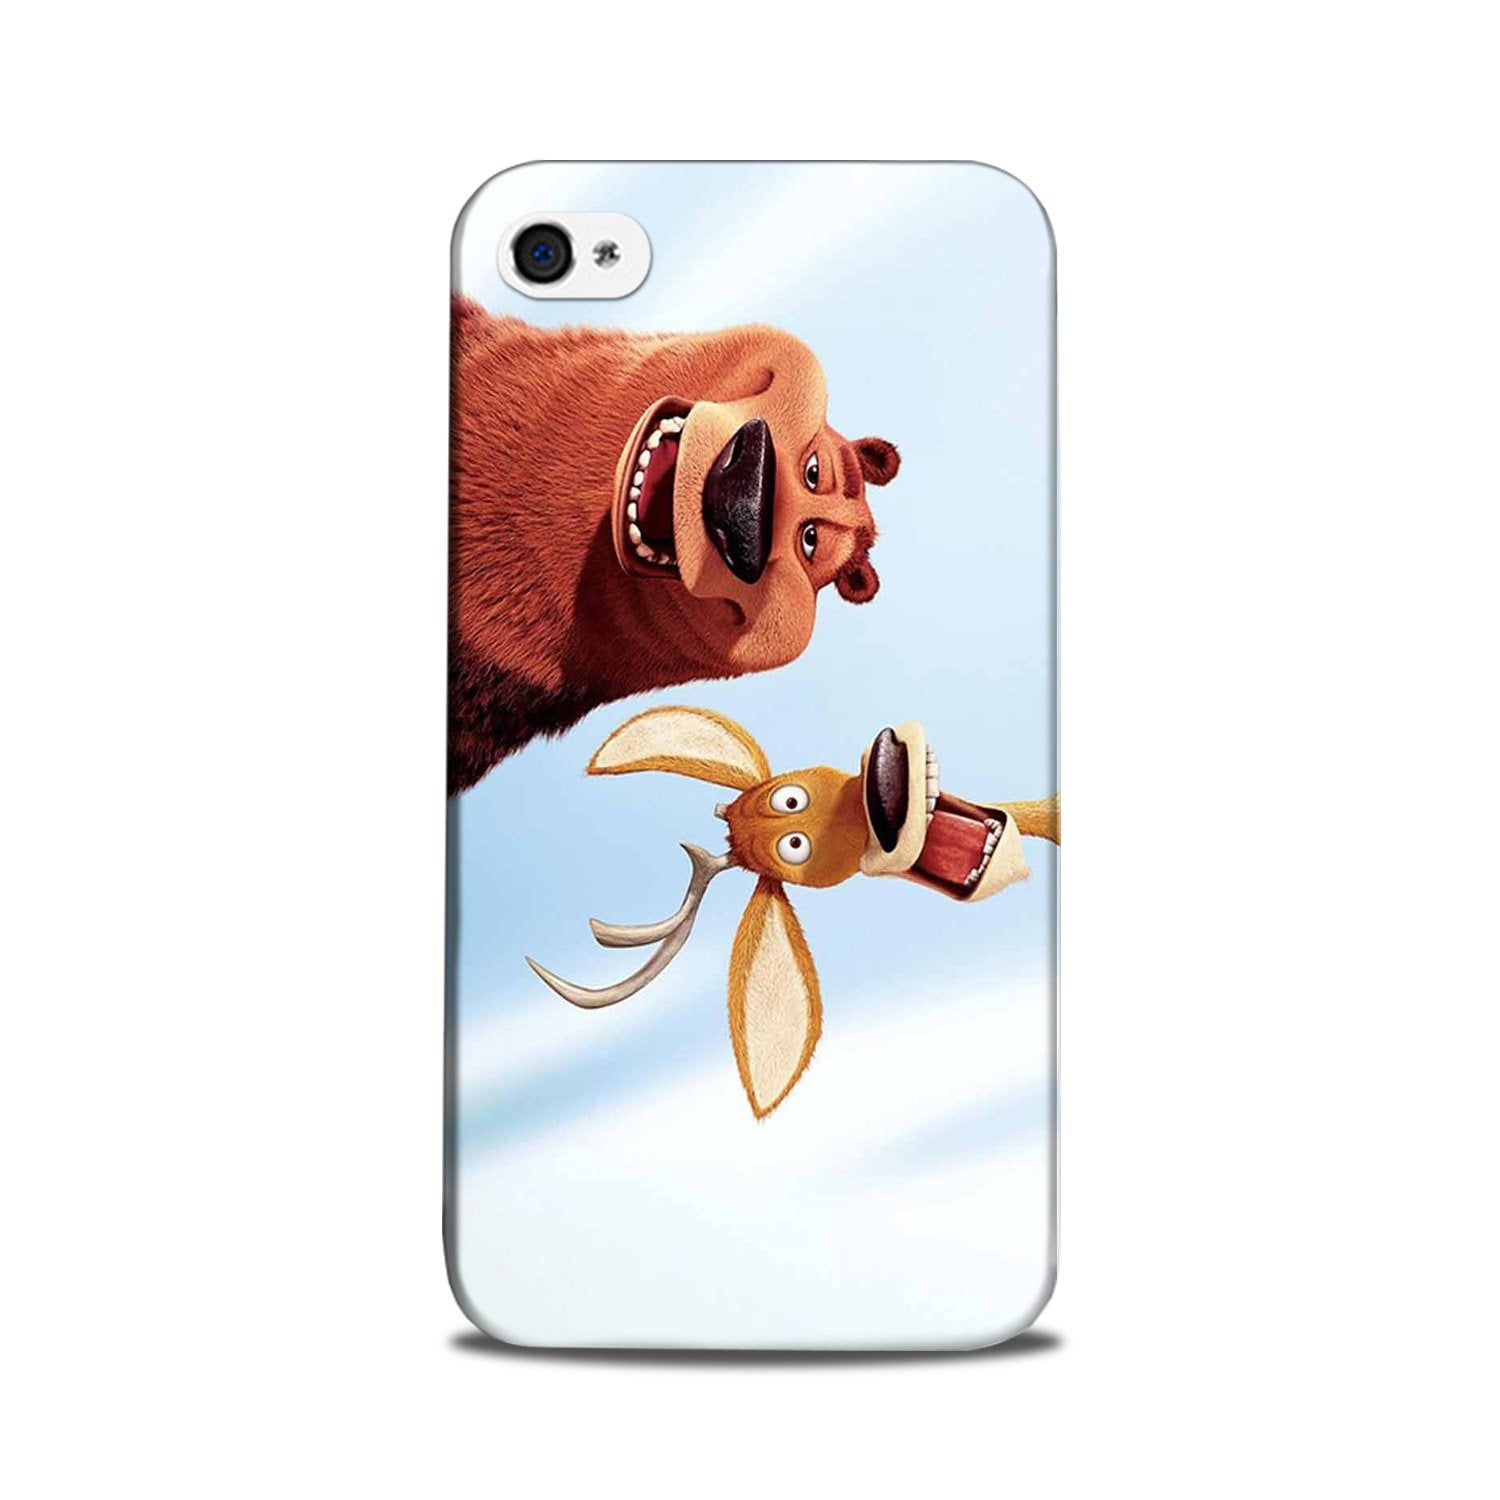 Polar Beer Mobile Back Case for iPhone 5/ 5s  (Design - 344)